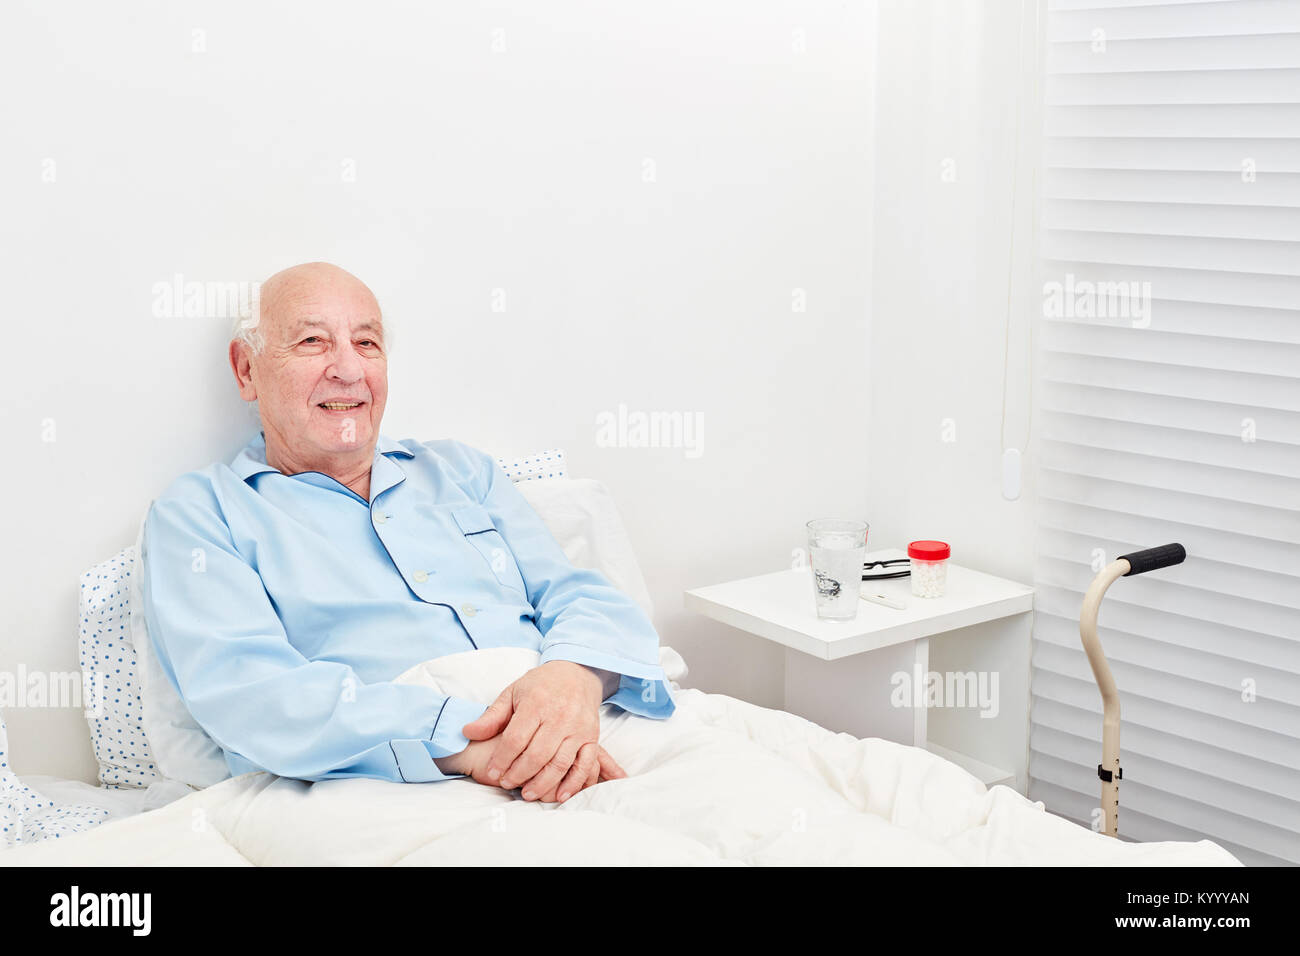 Bedridden Stock Photos Bedridden Stock Images Alamy